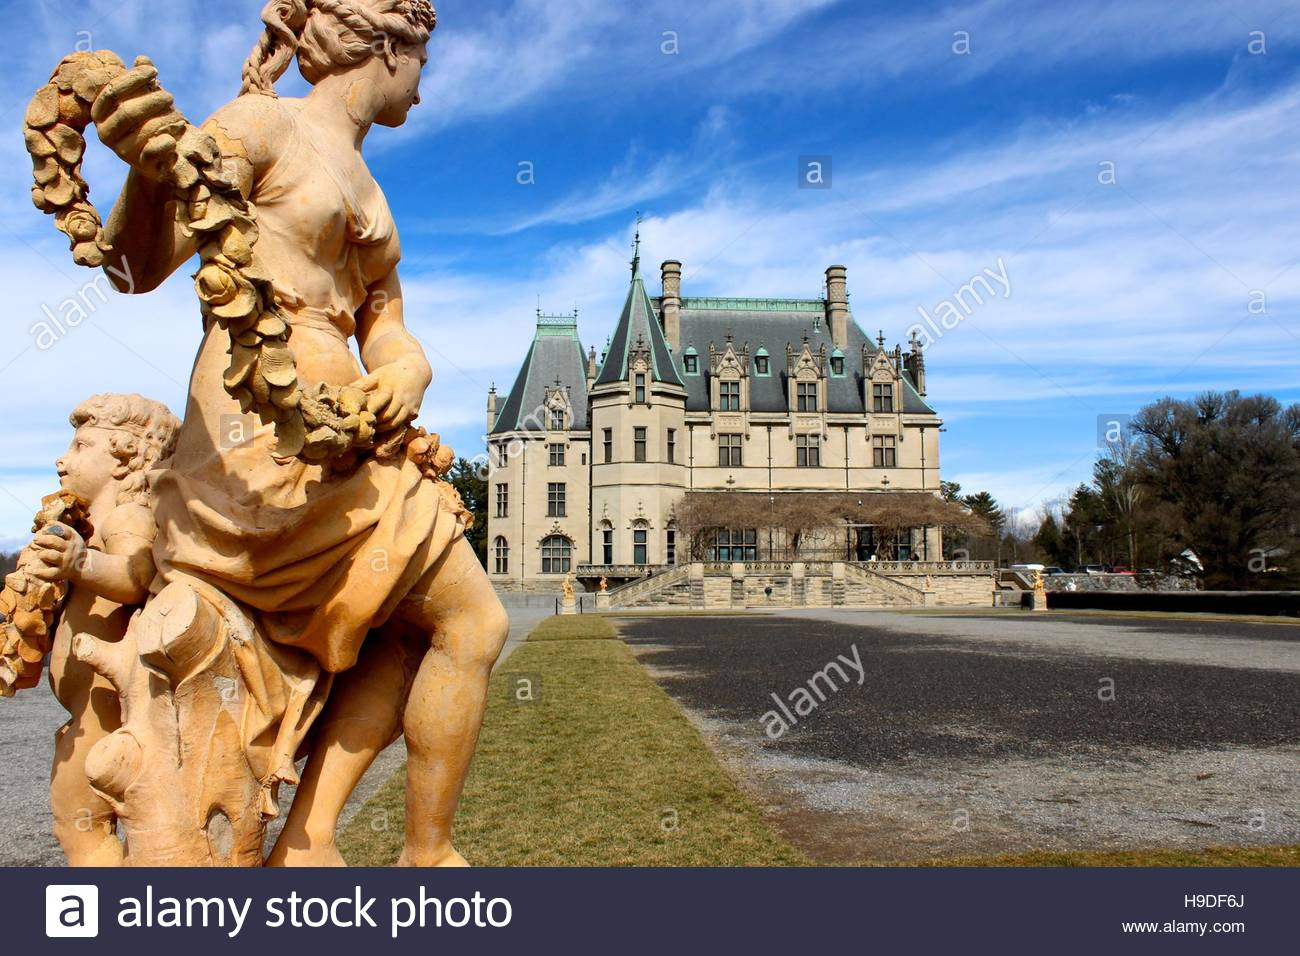 Statue outside of the Biltmore mansion - Stock Image